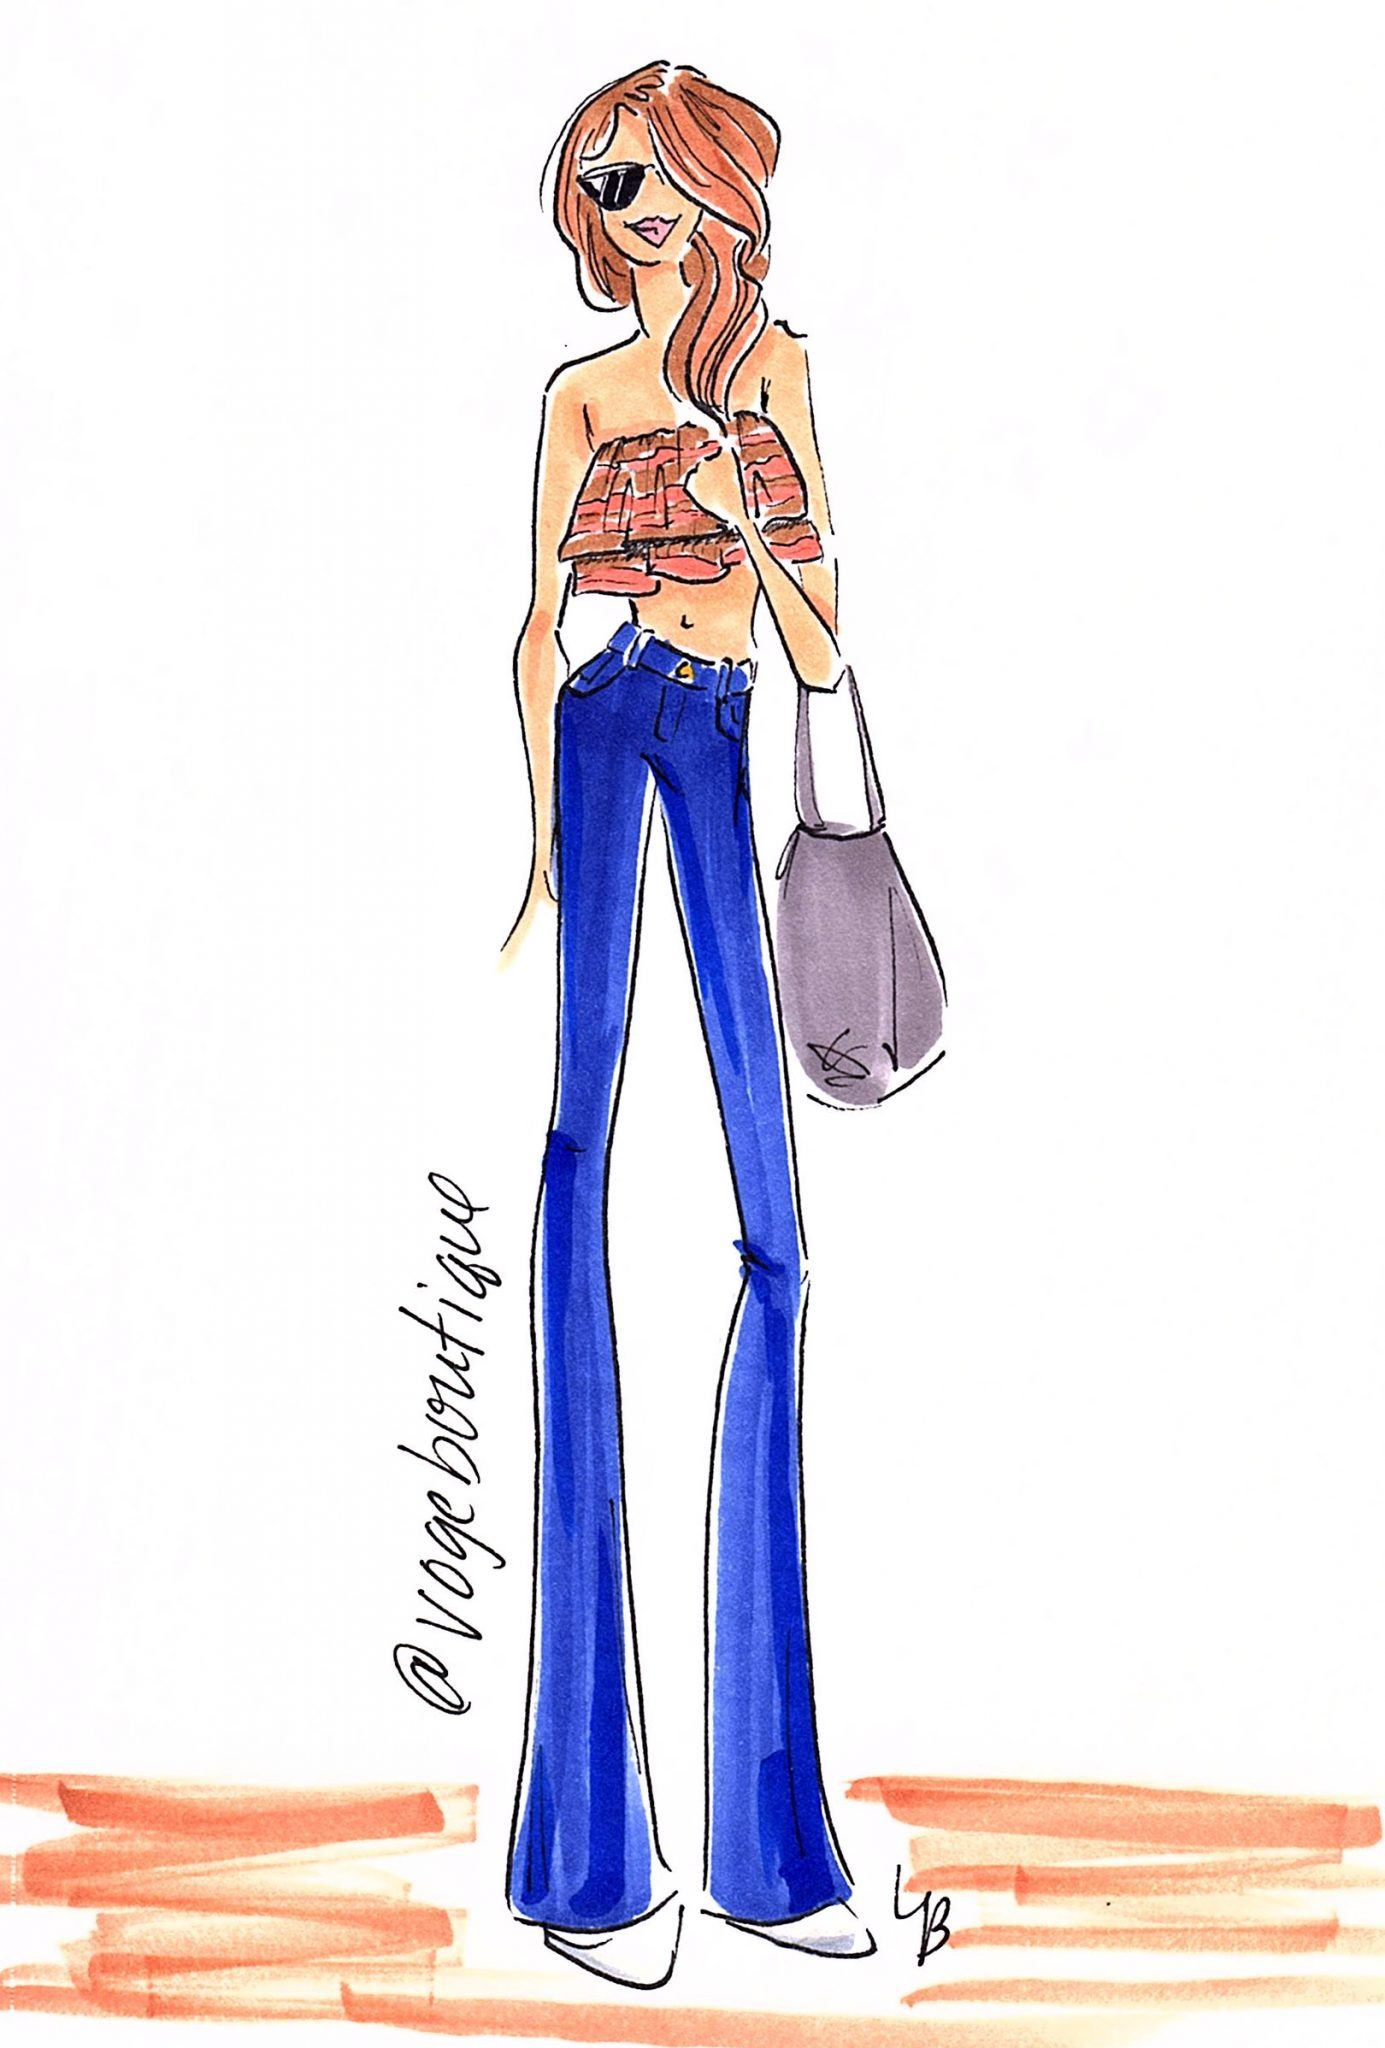 @Vogeboutique @lbprojectprint San Antonio Fashion Sketch